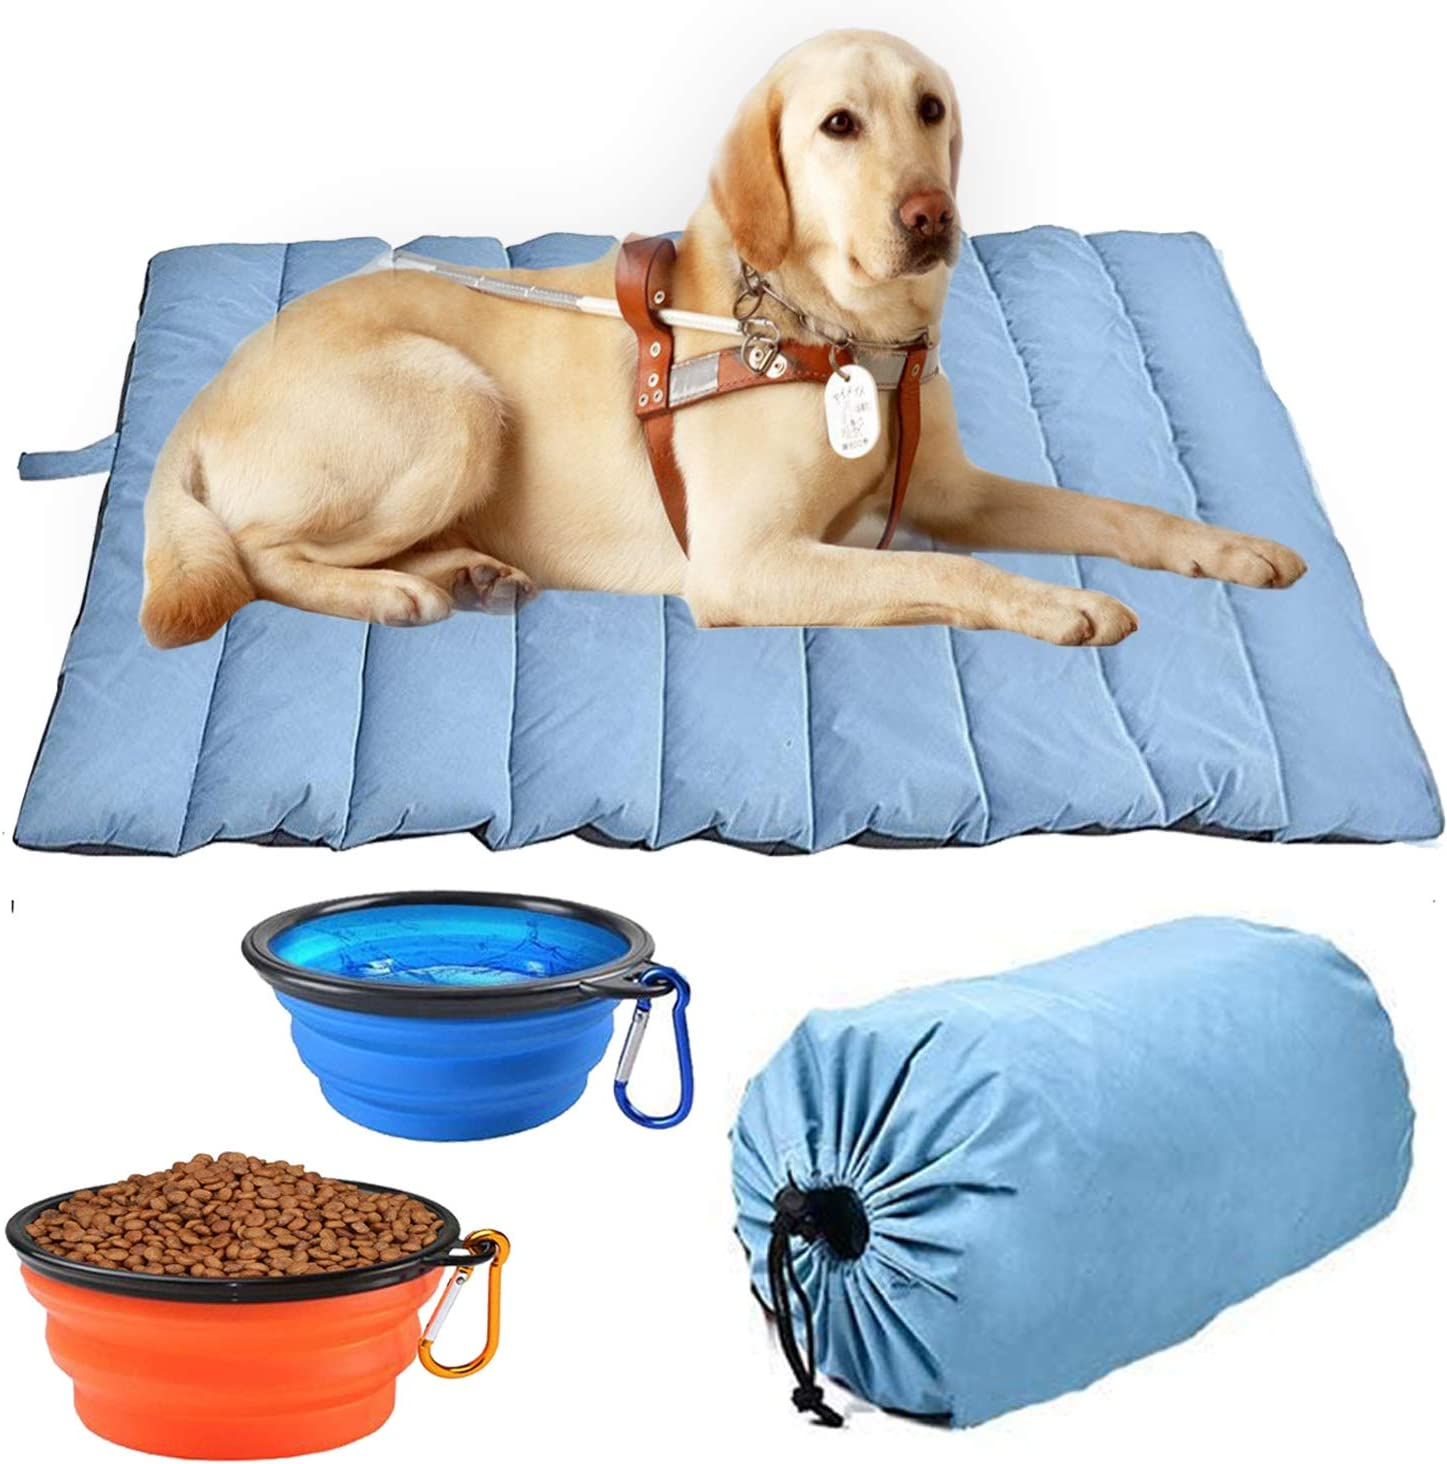 lululun Outdoor Waterproof Dog Bed - Washable, Large Size, Durable,Portable and Camping Travel Pet Mat 47'' x 28'' - Fit Indoor Outdoor Use for Dogs Cat Pet, for Four Seasons (47.5'' x 27.5'', Blue)